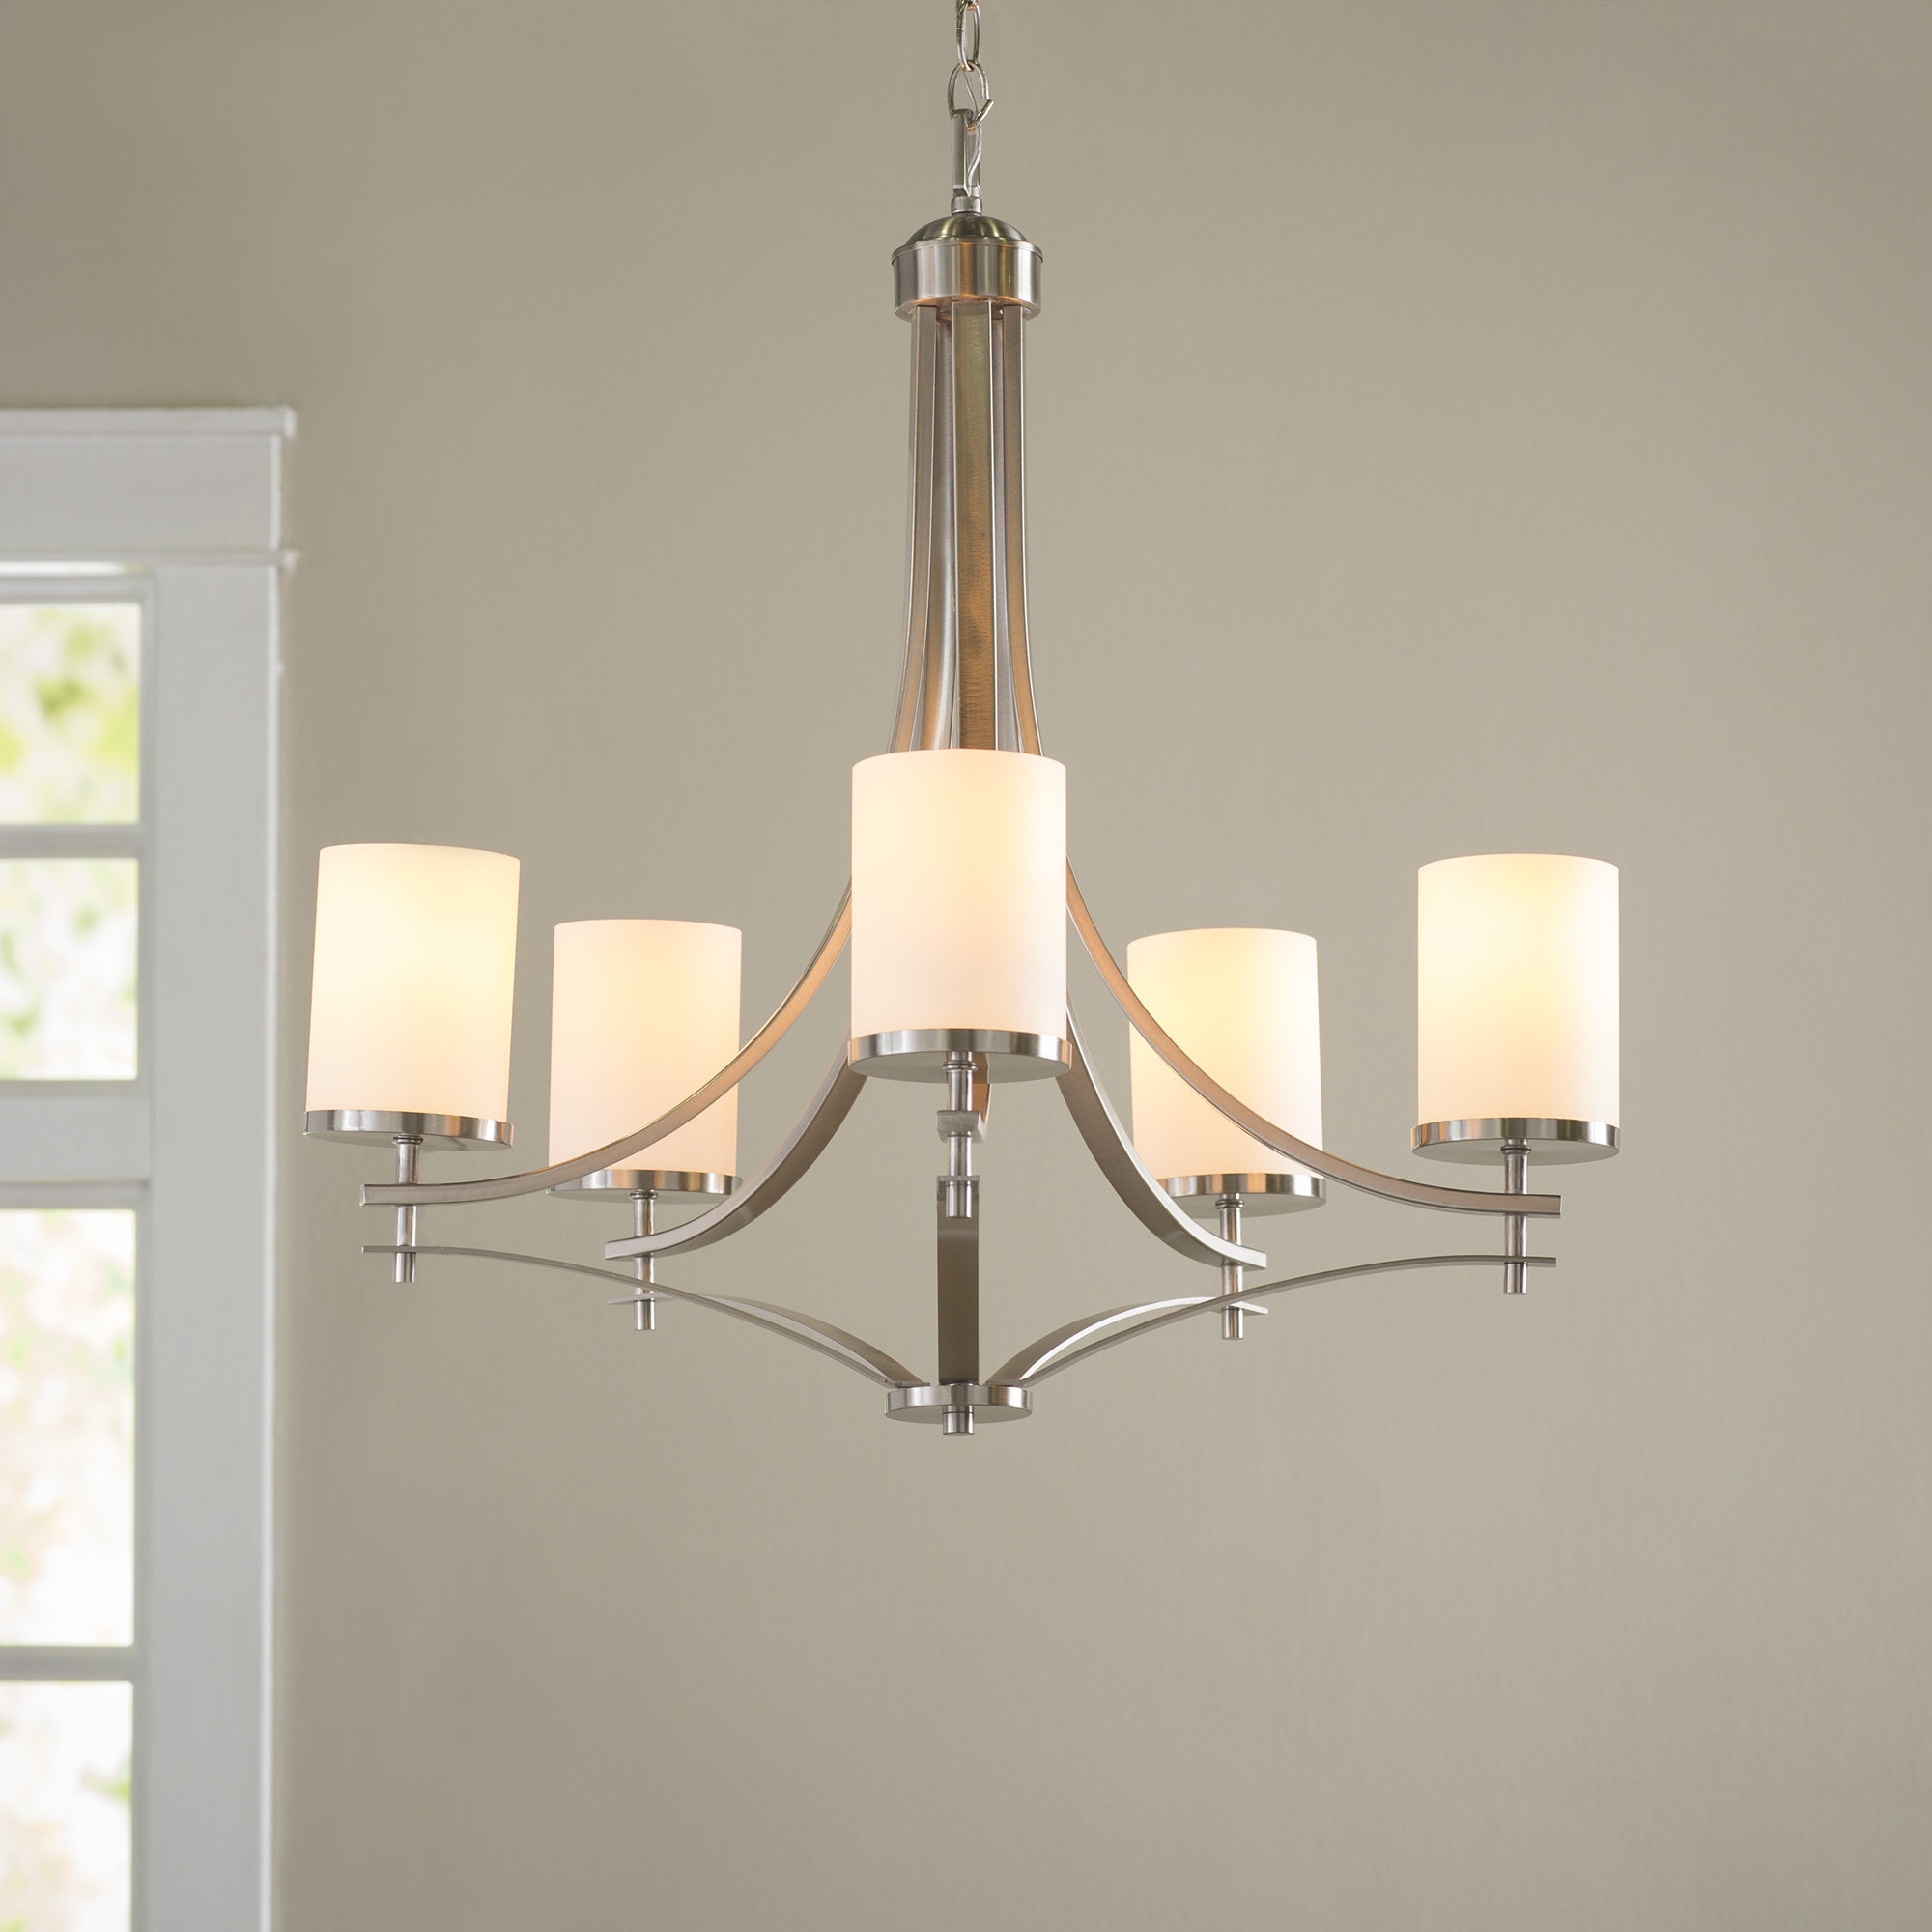 Widely Used Agnes 5 Light Shaded Chandelier Regarding Suki 5 Light Shaded Chandeliers (View 25 of 25)